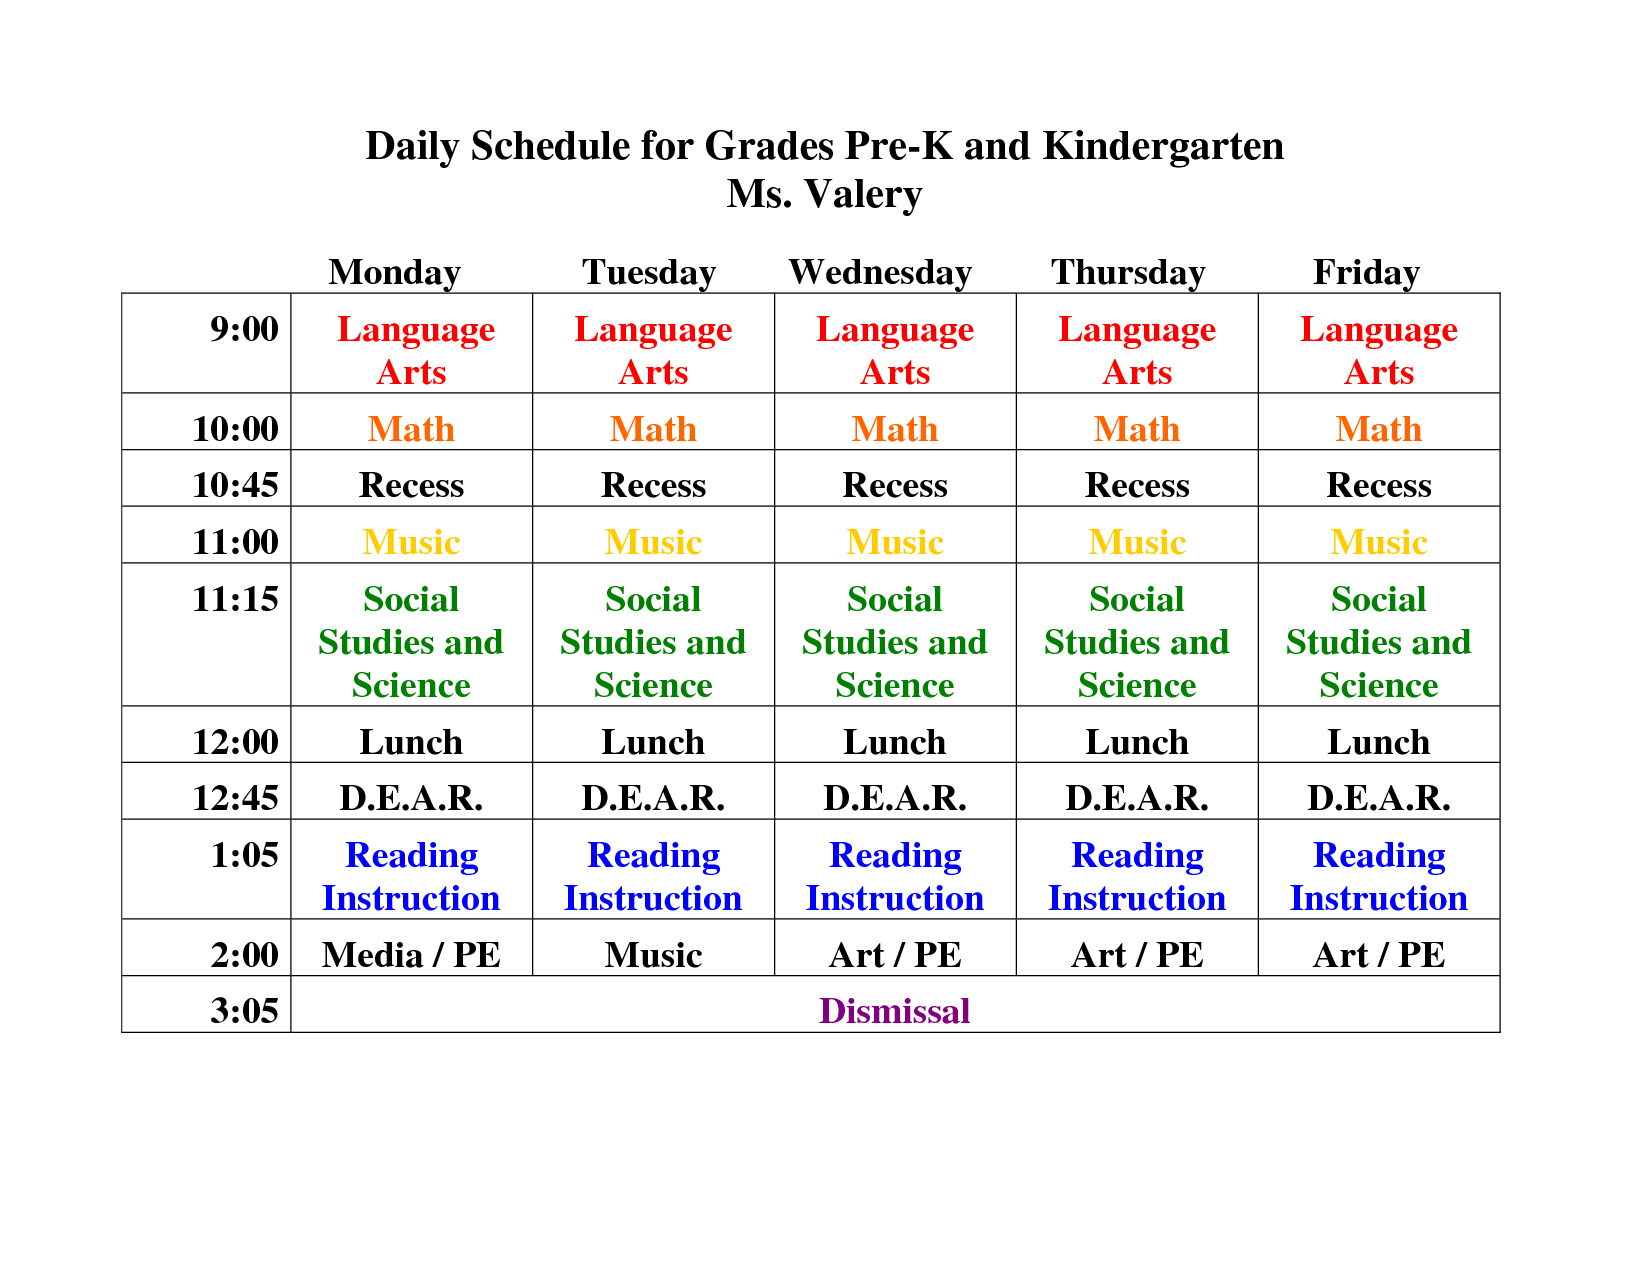 Kindergarten+Daily+Schedule+Template | Daily Schedule For Grades Pre pertaining to Free Preschool Template For Schedule